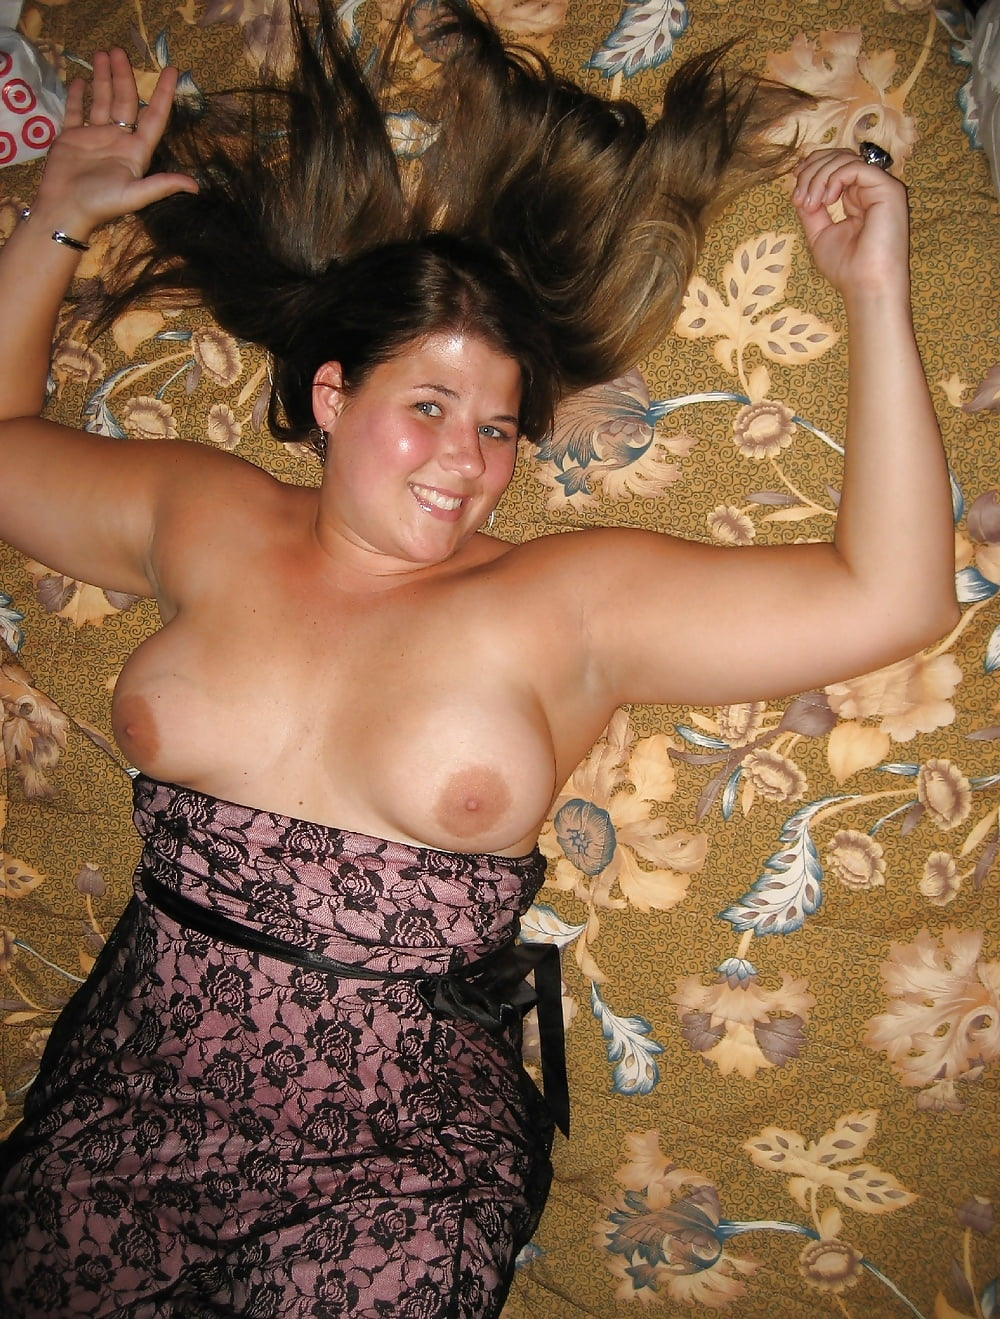 Girls boobs fall out